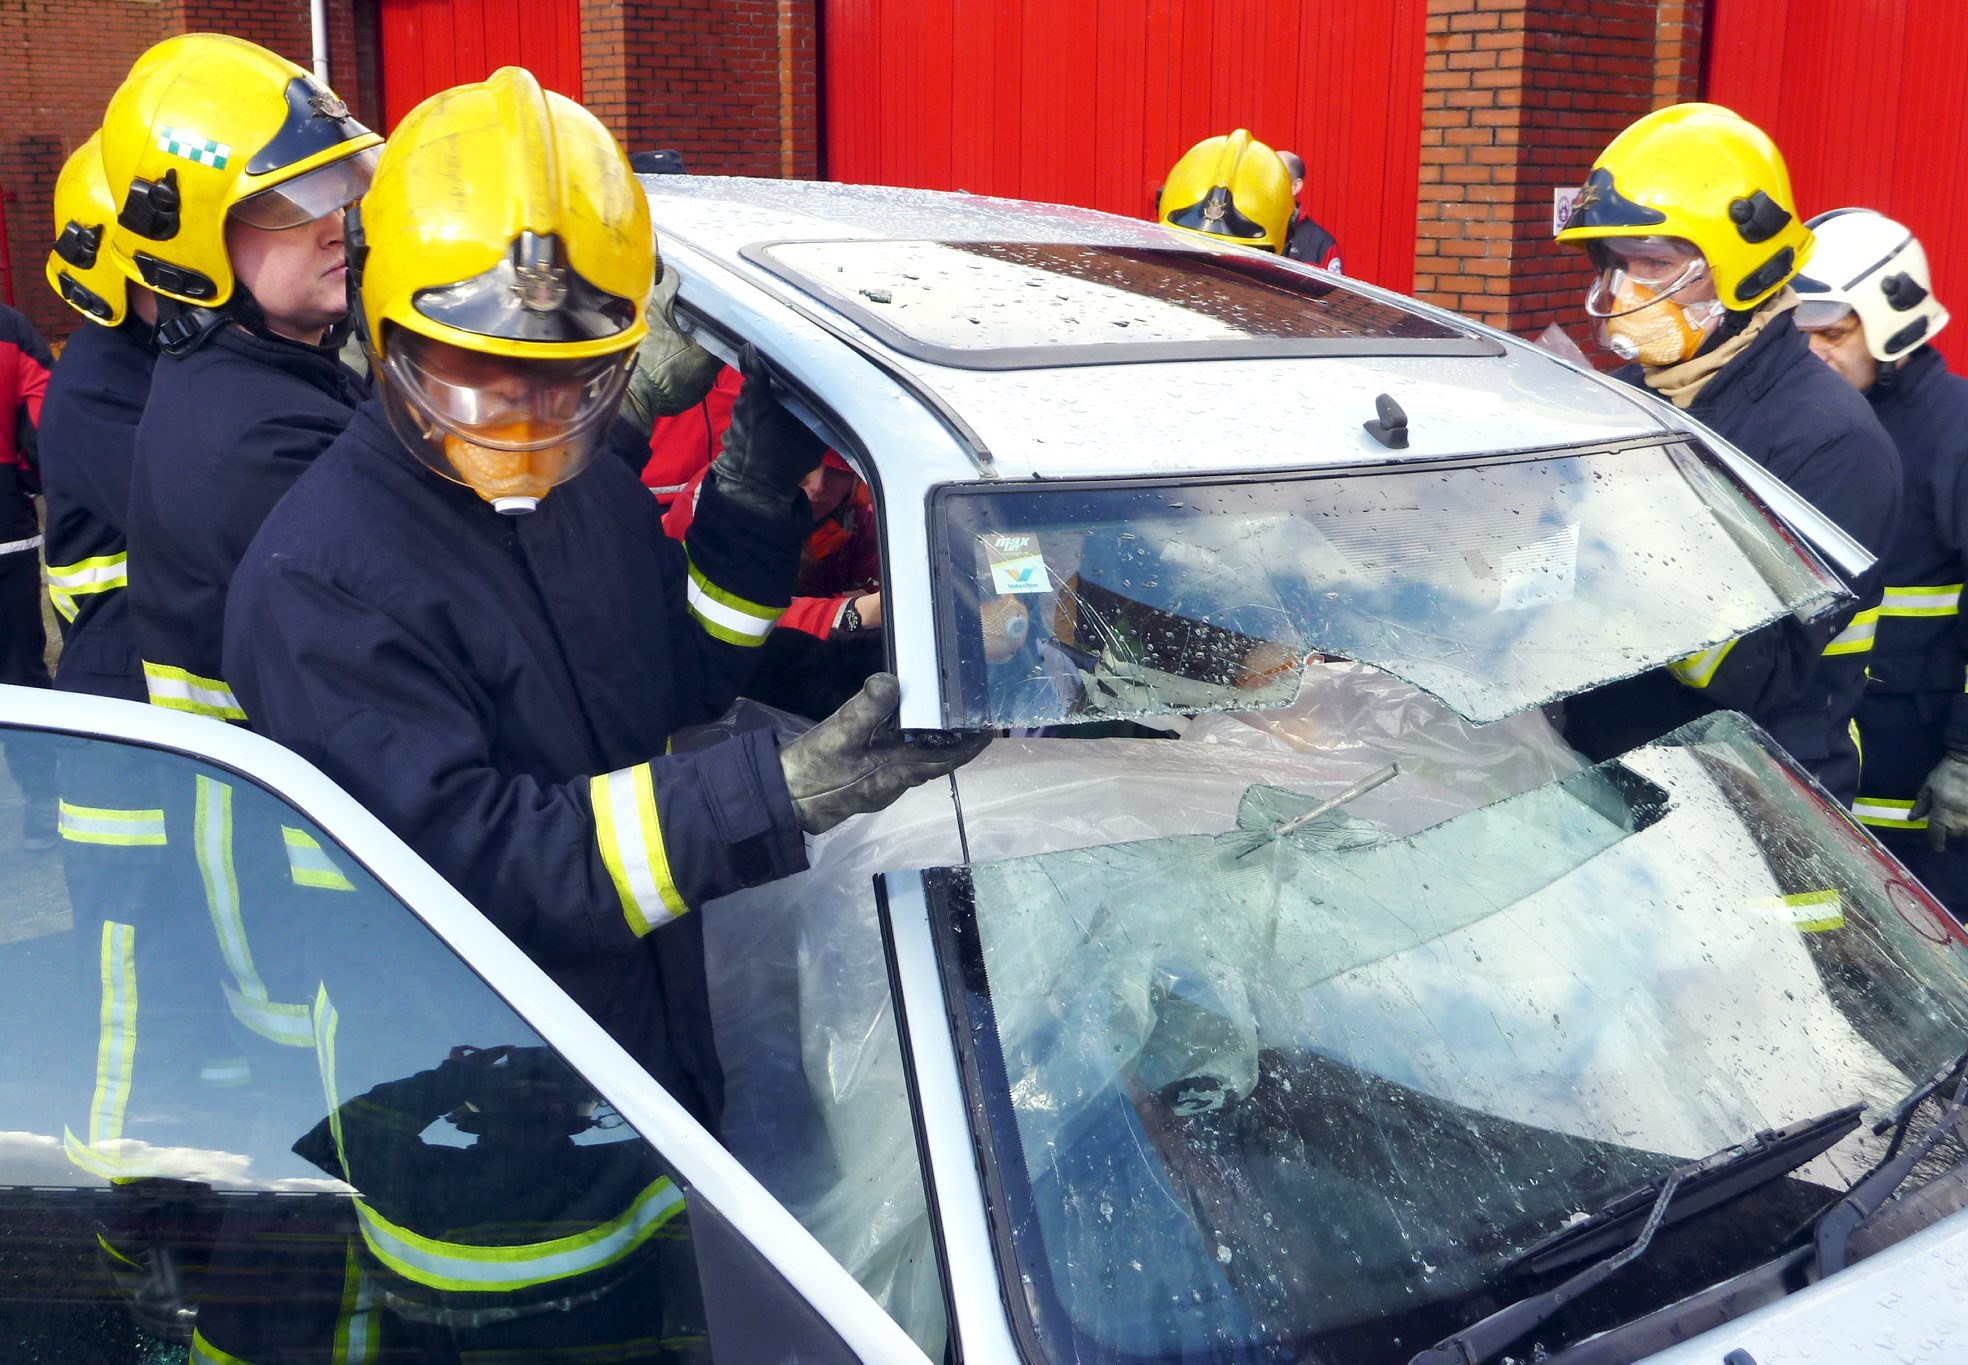 Motorists simulate being impaled in gruesome fire service training exercise